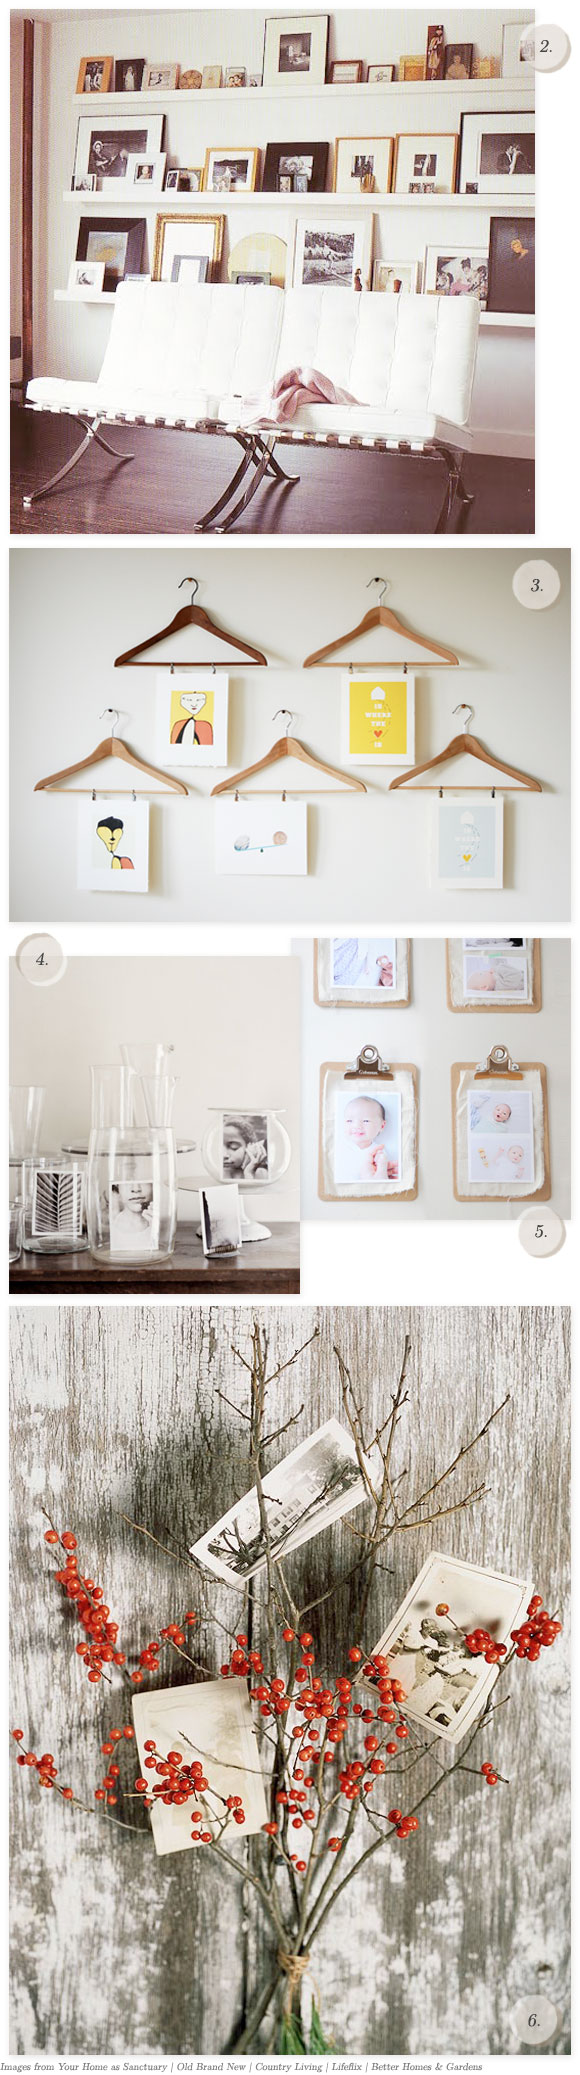 6 creative ways to display pictures